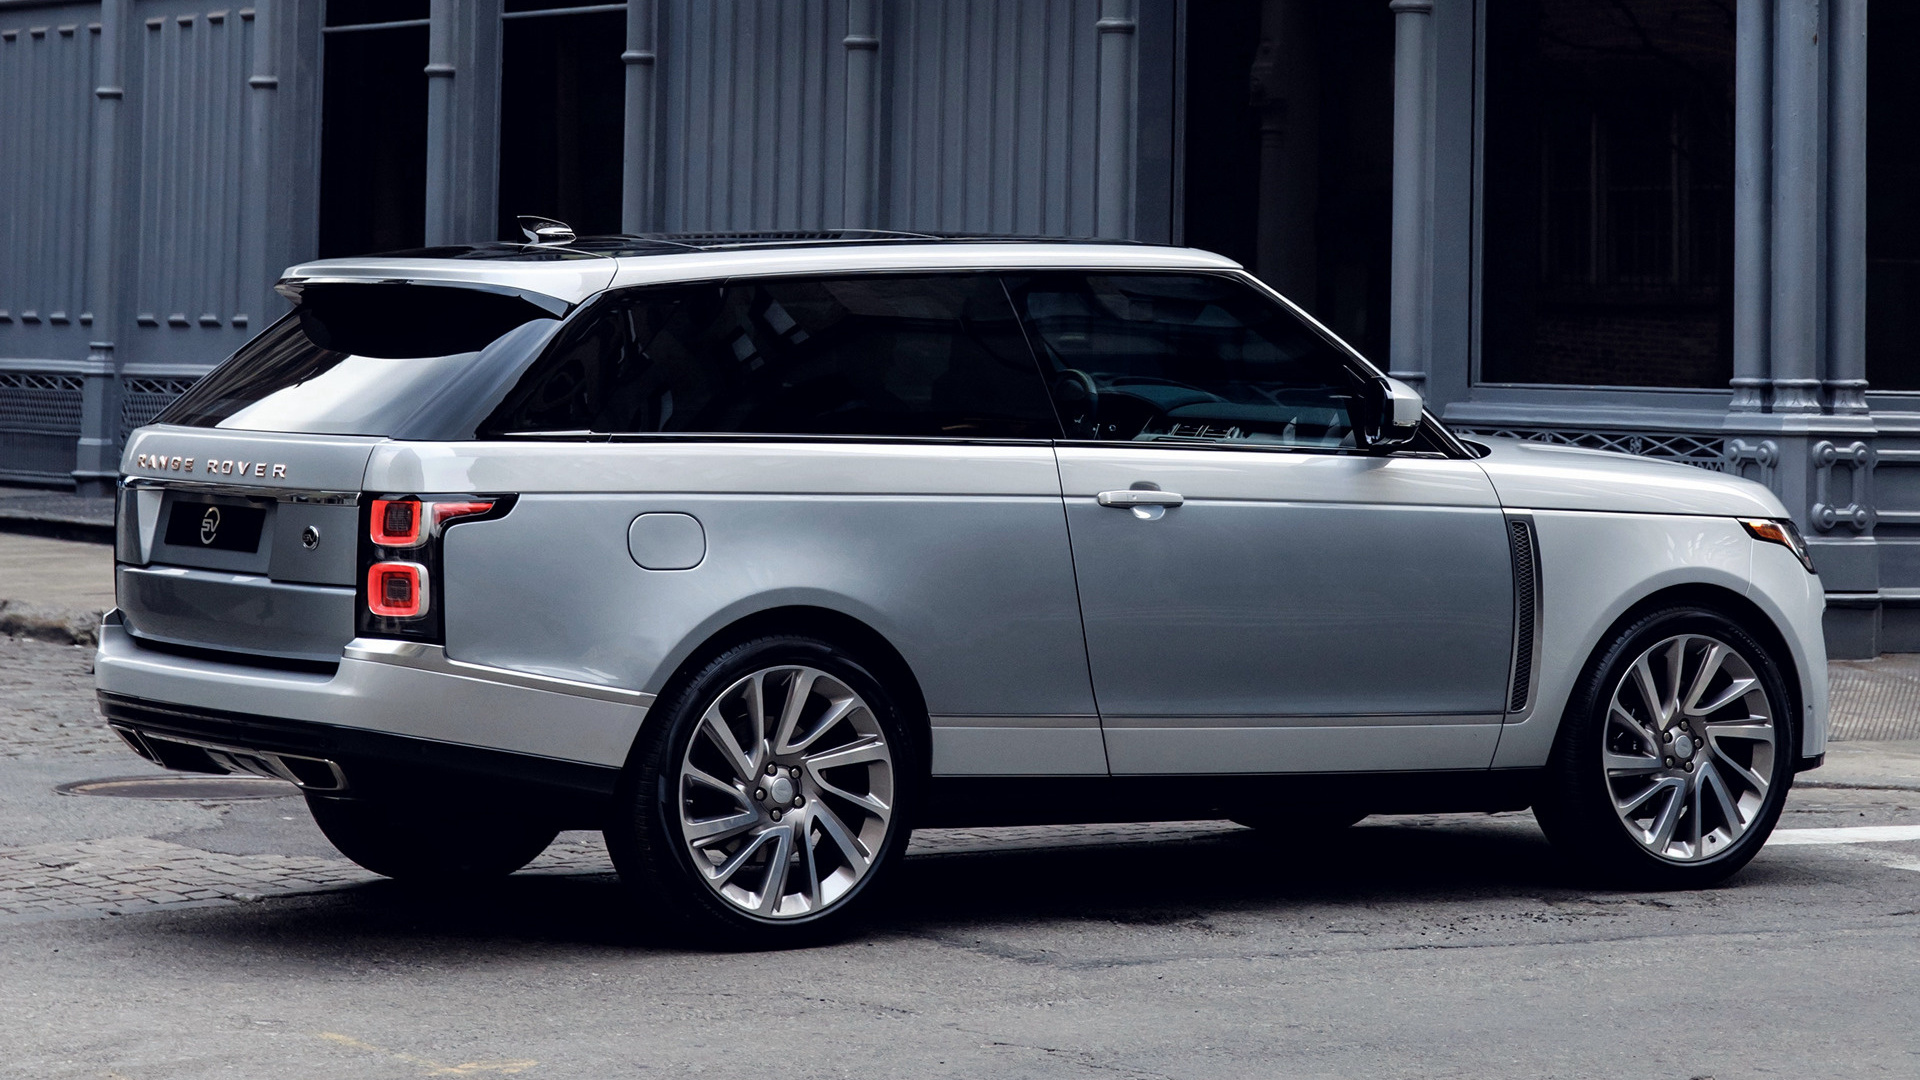 2019 Range Rover SV Coupe (US) - Wallpapers and HD Images ...